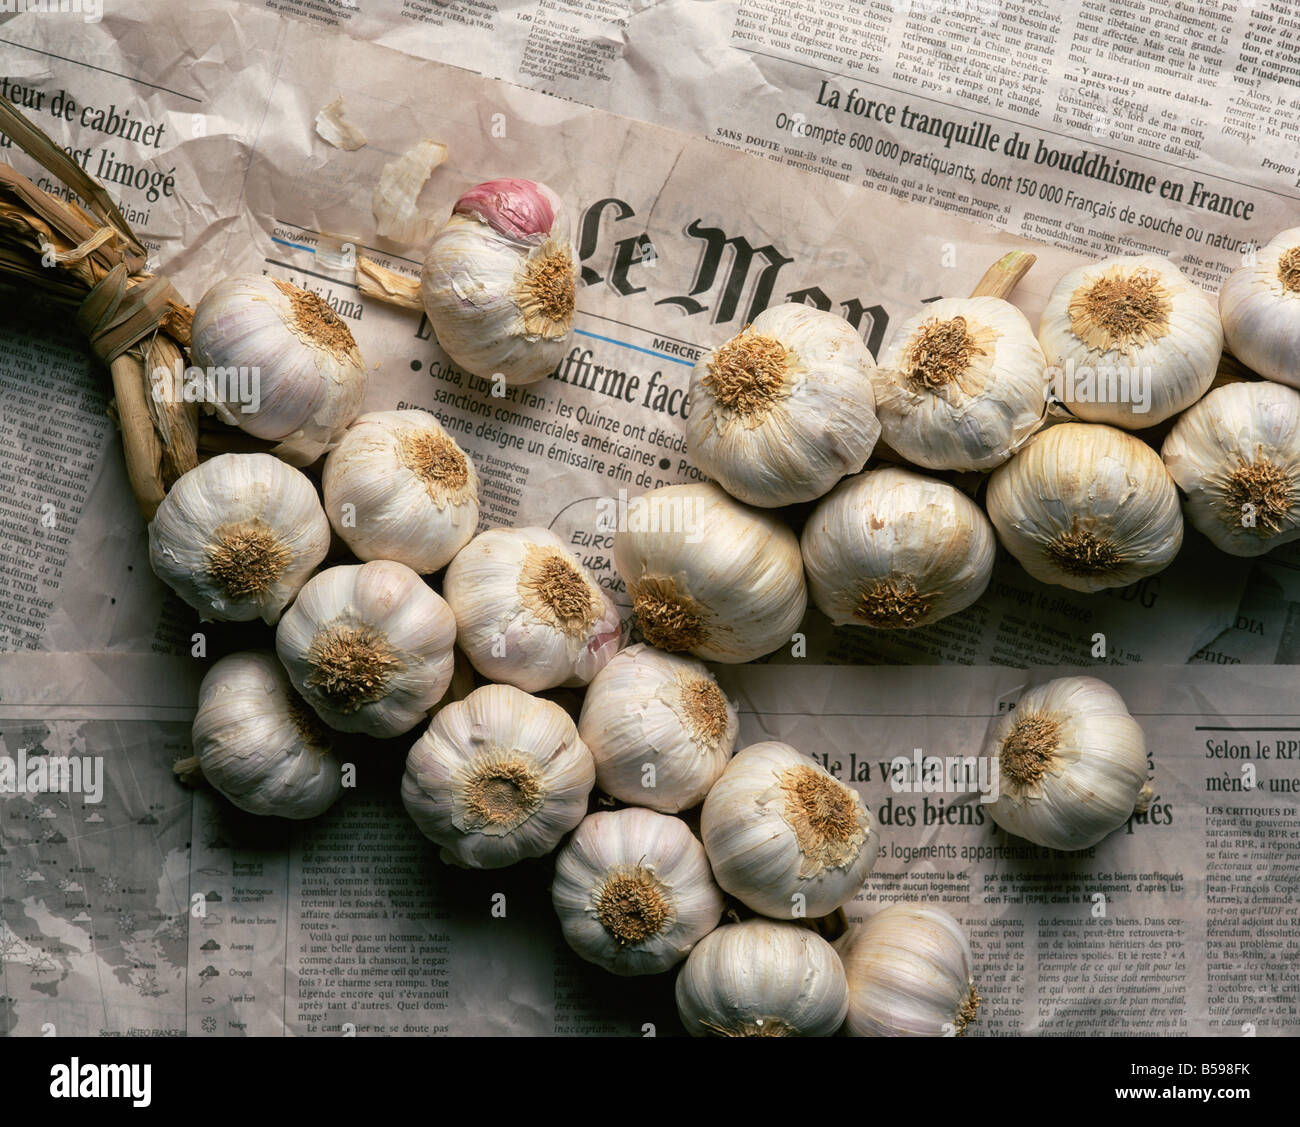 Strings of garlic spread out on Le Monde newspaper in France L Frost - Stock Image